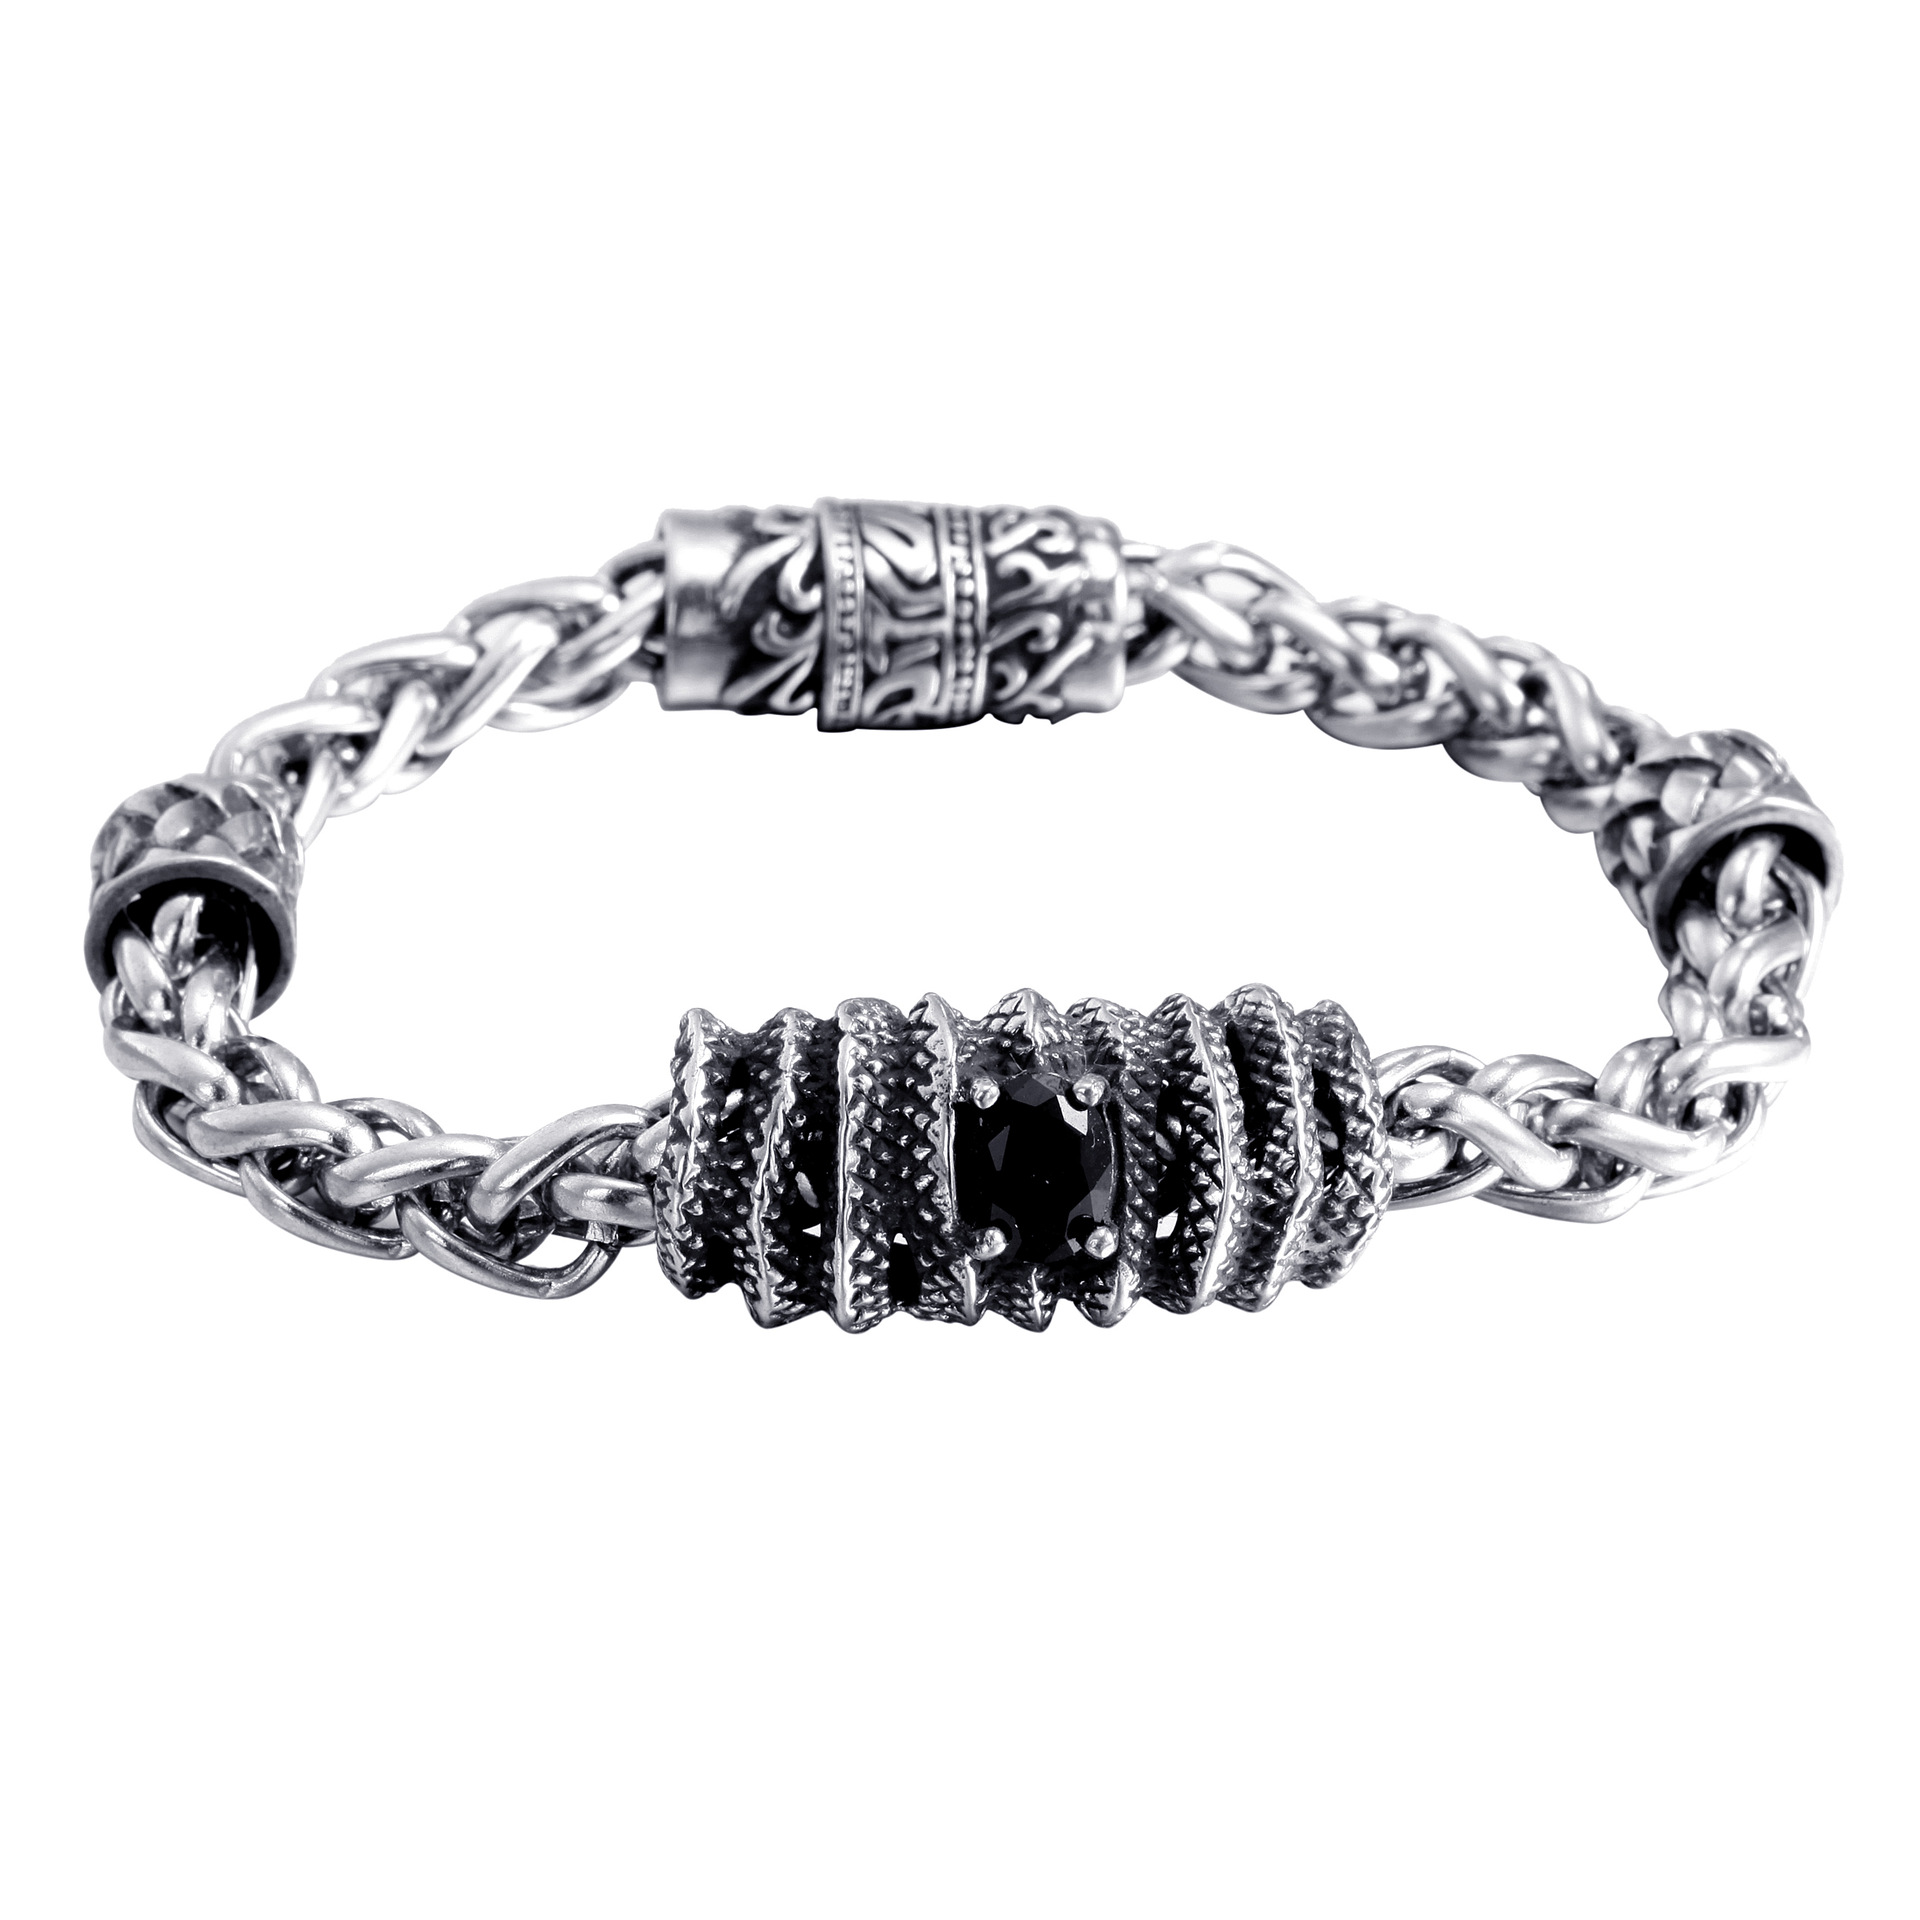 Stainless Steel Bracelet Simple Couple Titanium Steel Jewelry With  Unique Design For Men And Women 0